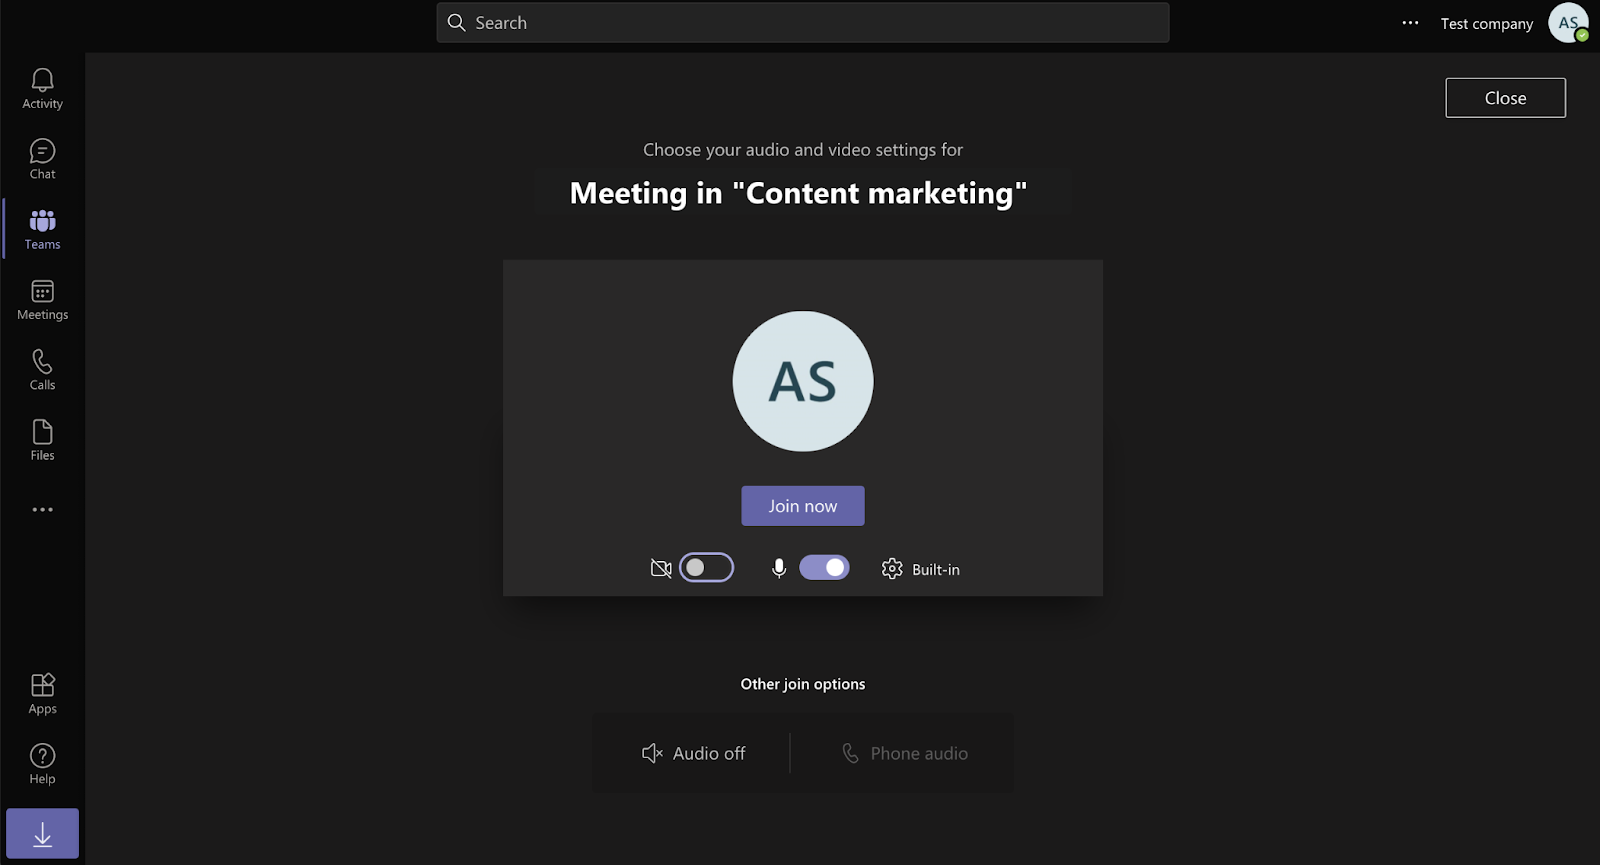 How to video call on Microsoft Teams